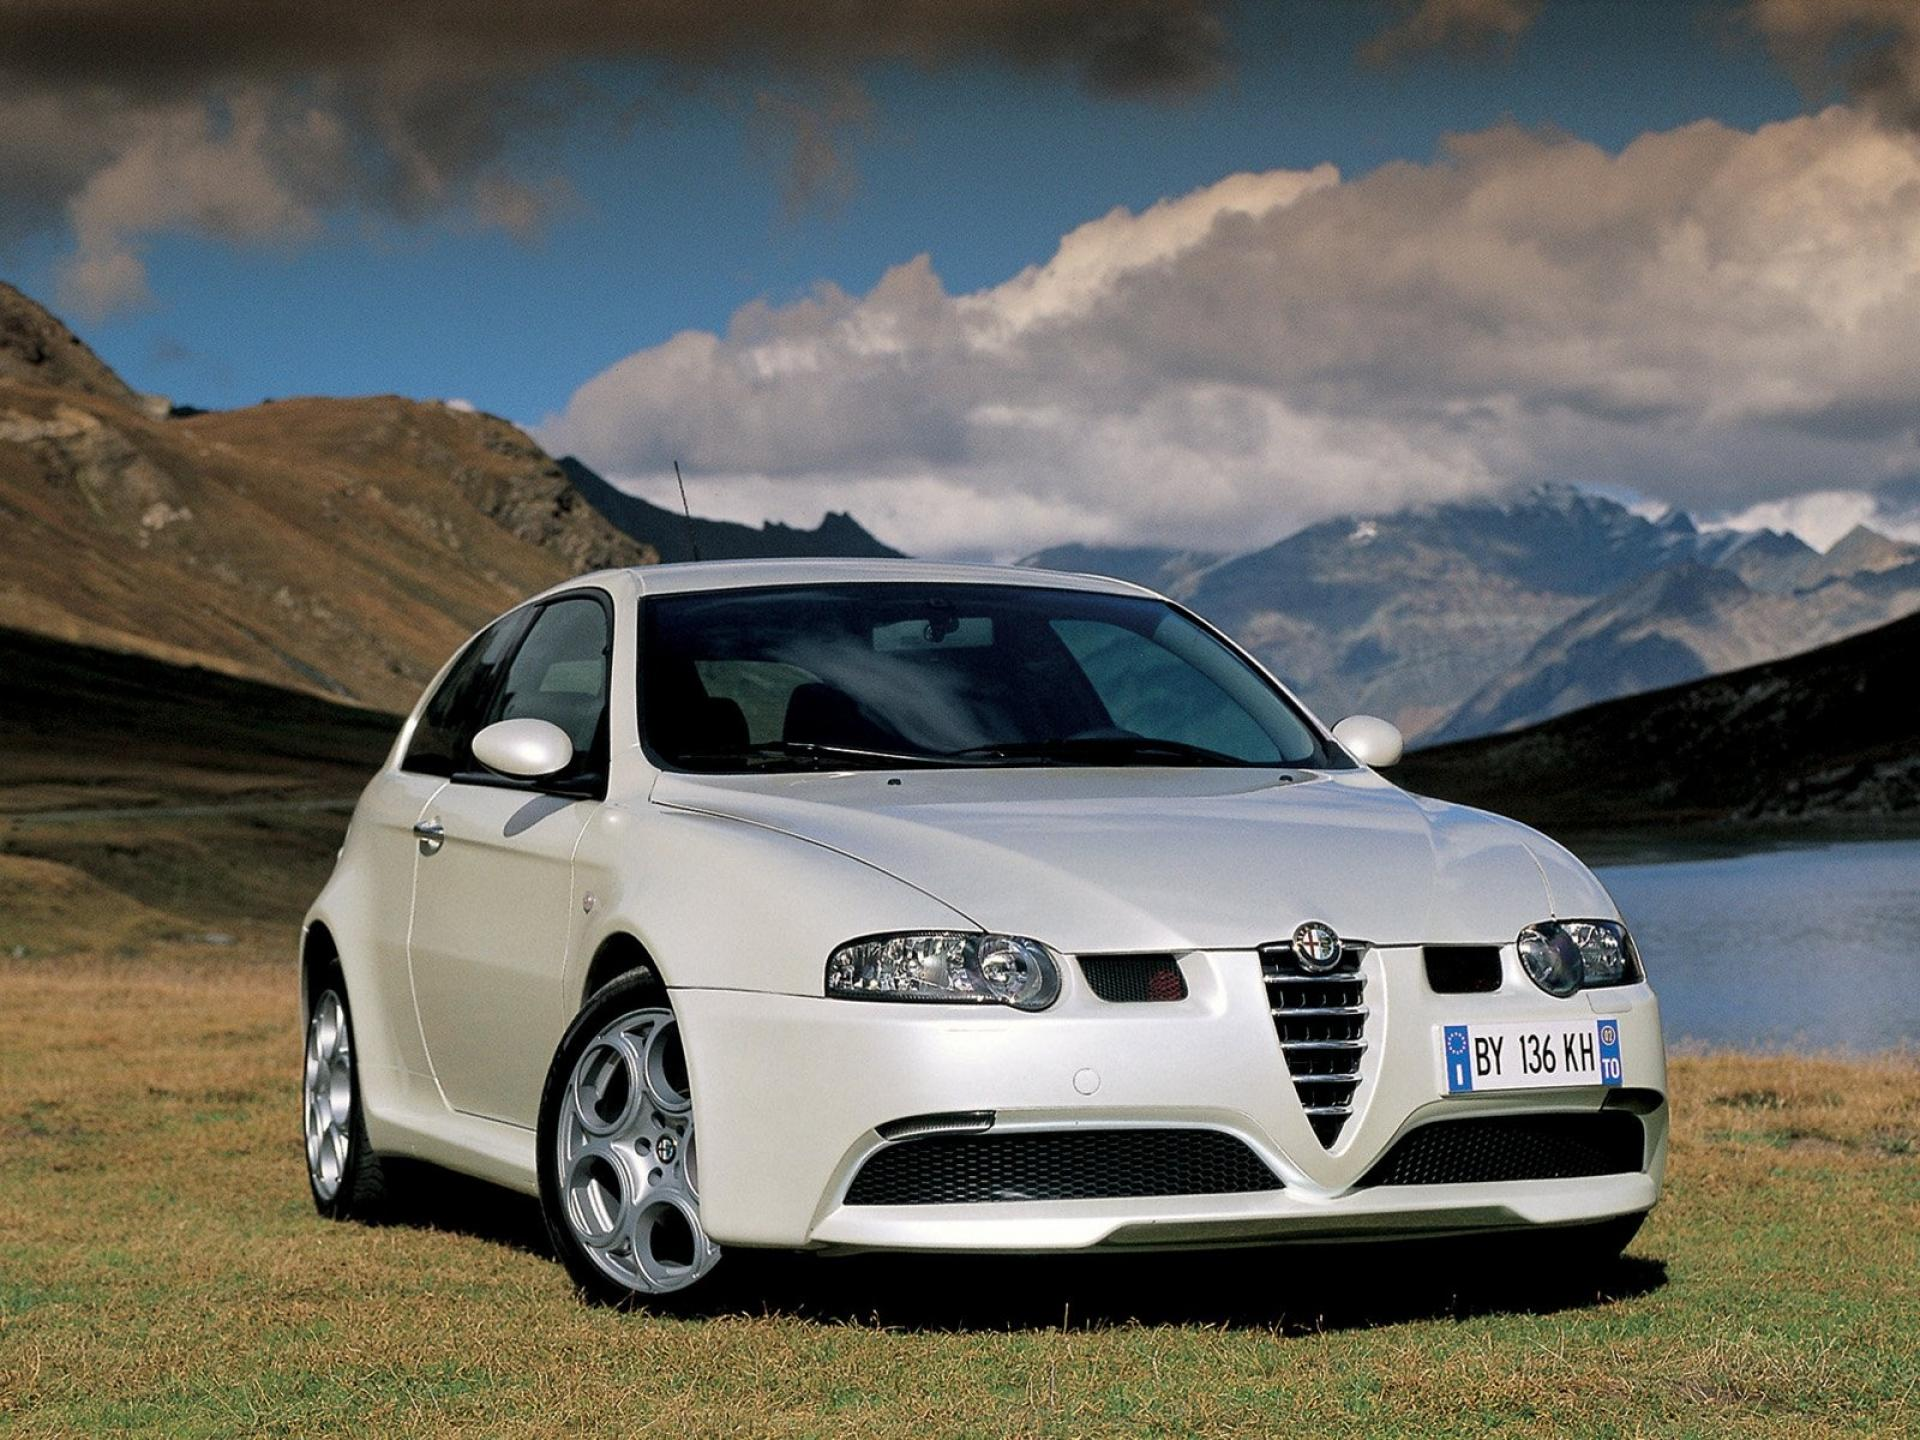 1920x1440 - Alfa Romeo 147 Wallpapers 35